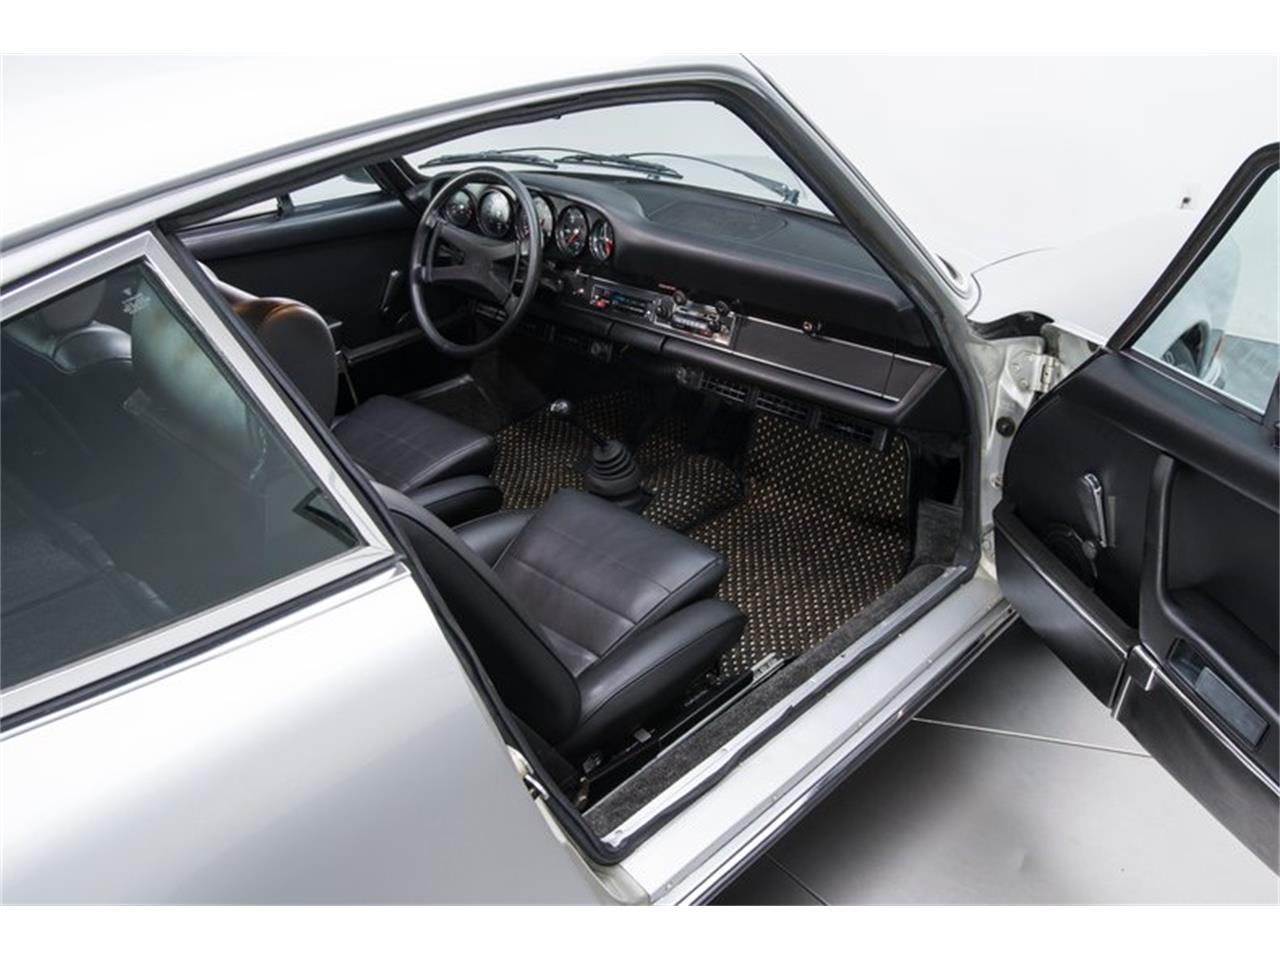 Large Picture of Classic '73 Porsche 911 located in North Carolina - $349,900.00 Offered by RK Motors Charlotte - MFCY